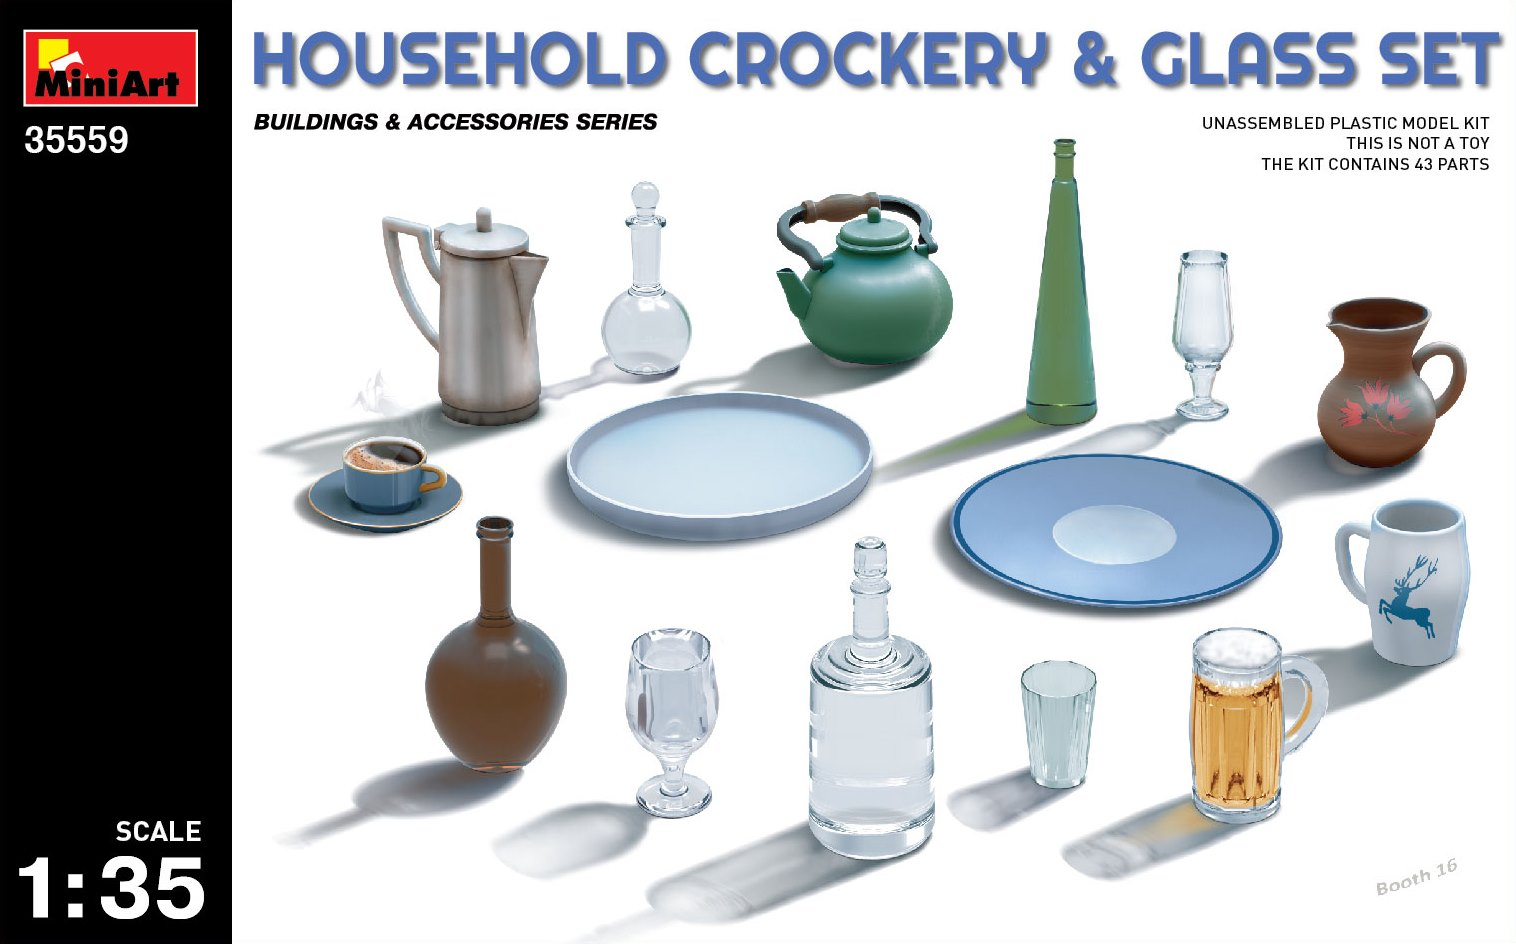 HOUSEHOLD CROCKERY & GLASS SET